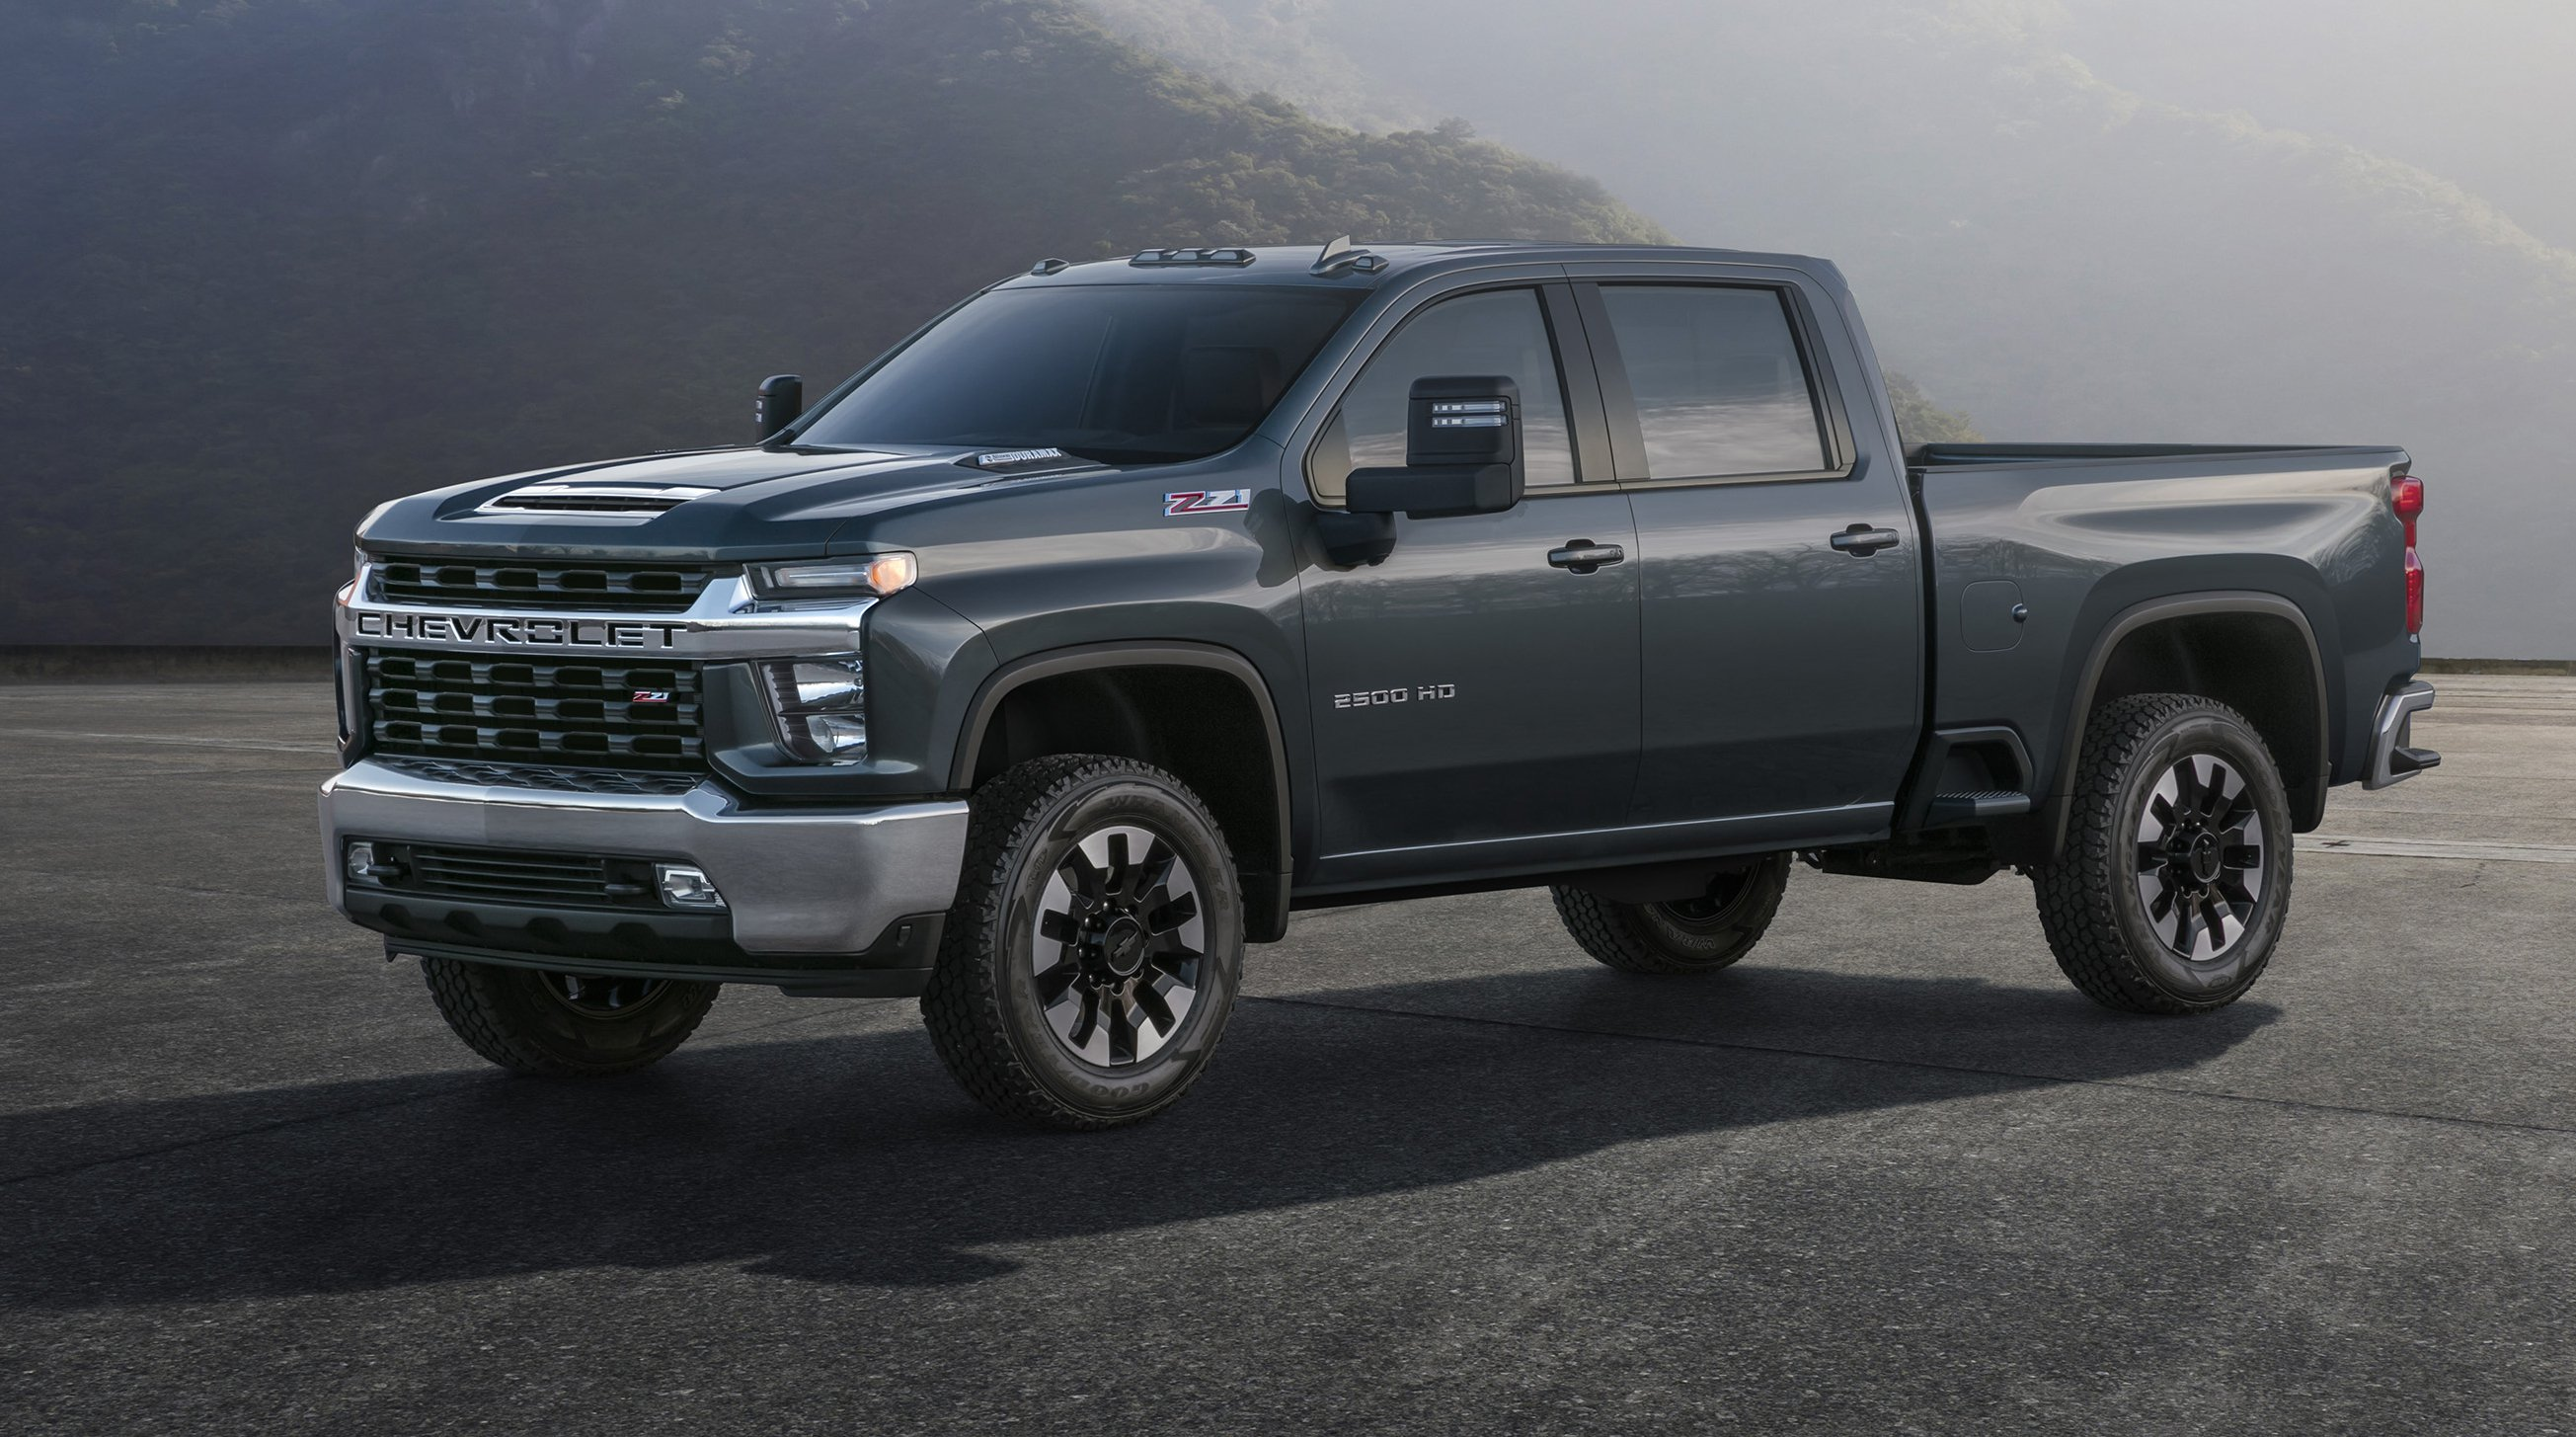 95 All New 2020 Chevy Avalanche Redesign